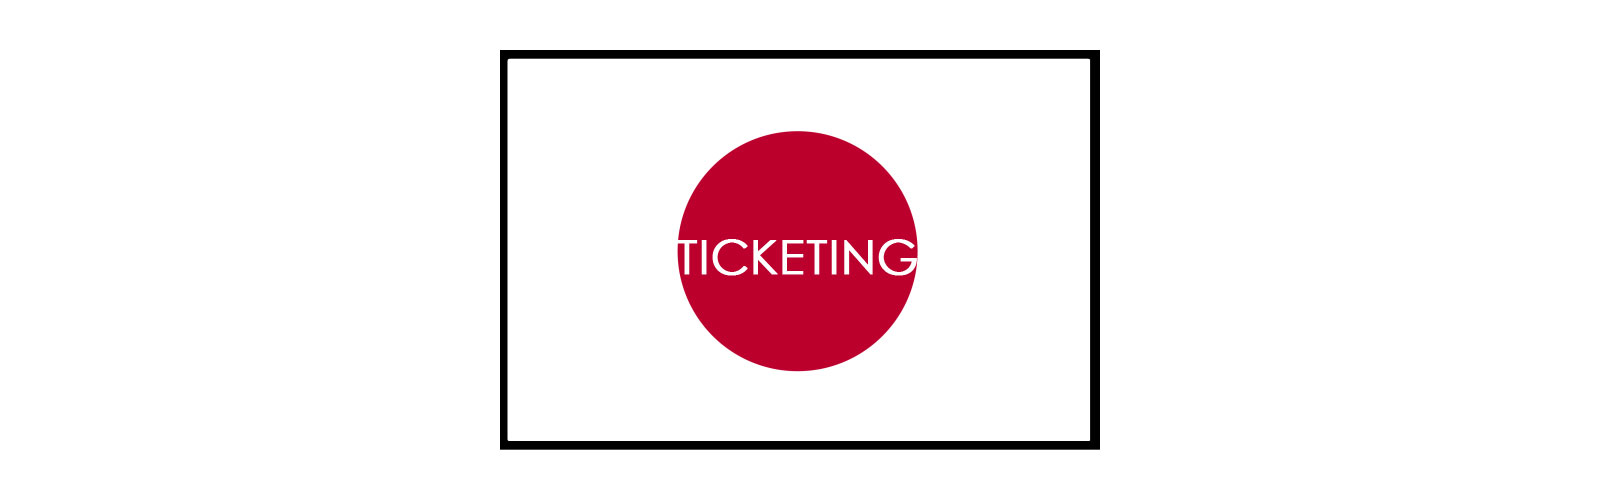 jp-ticketing